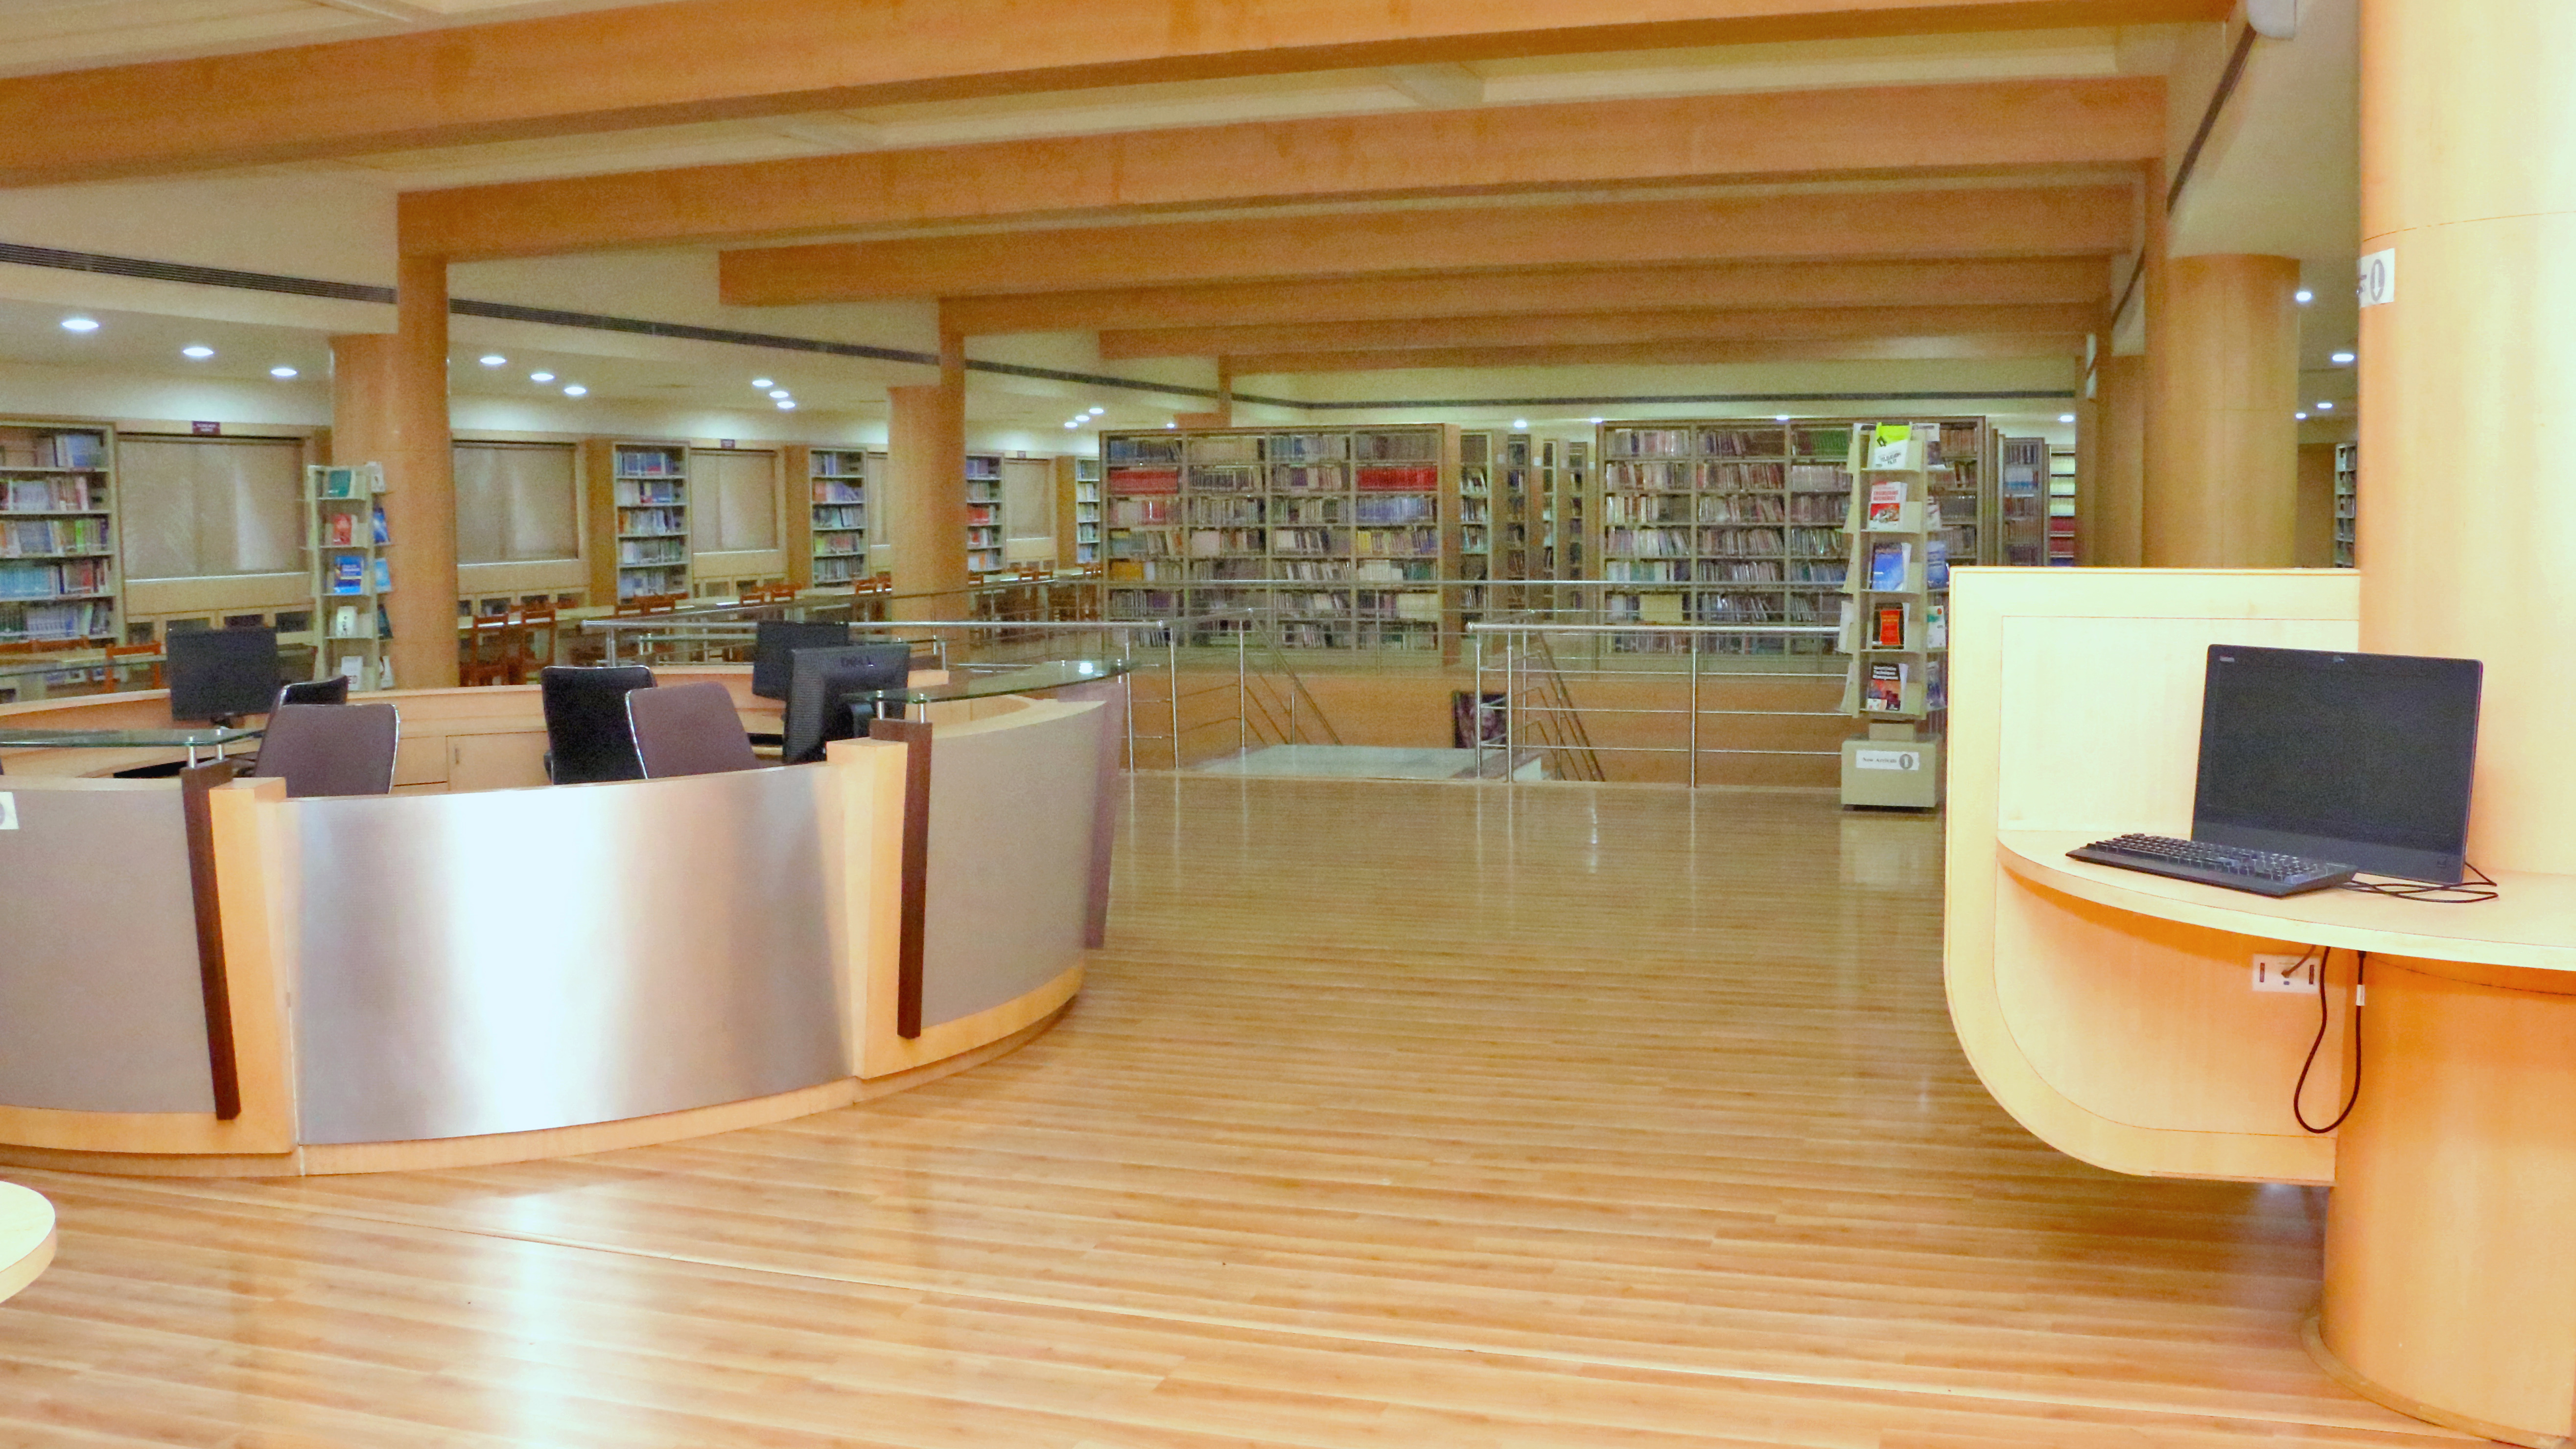 15 04 - Library - 002